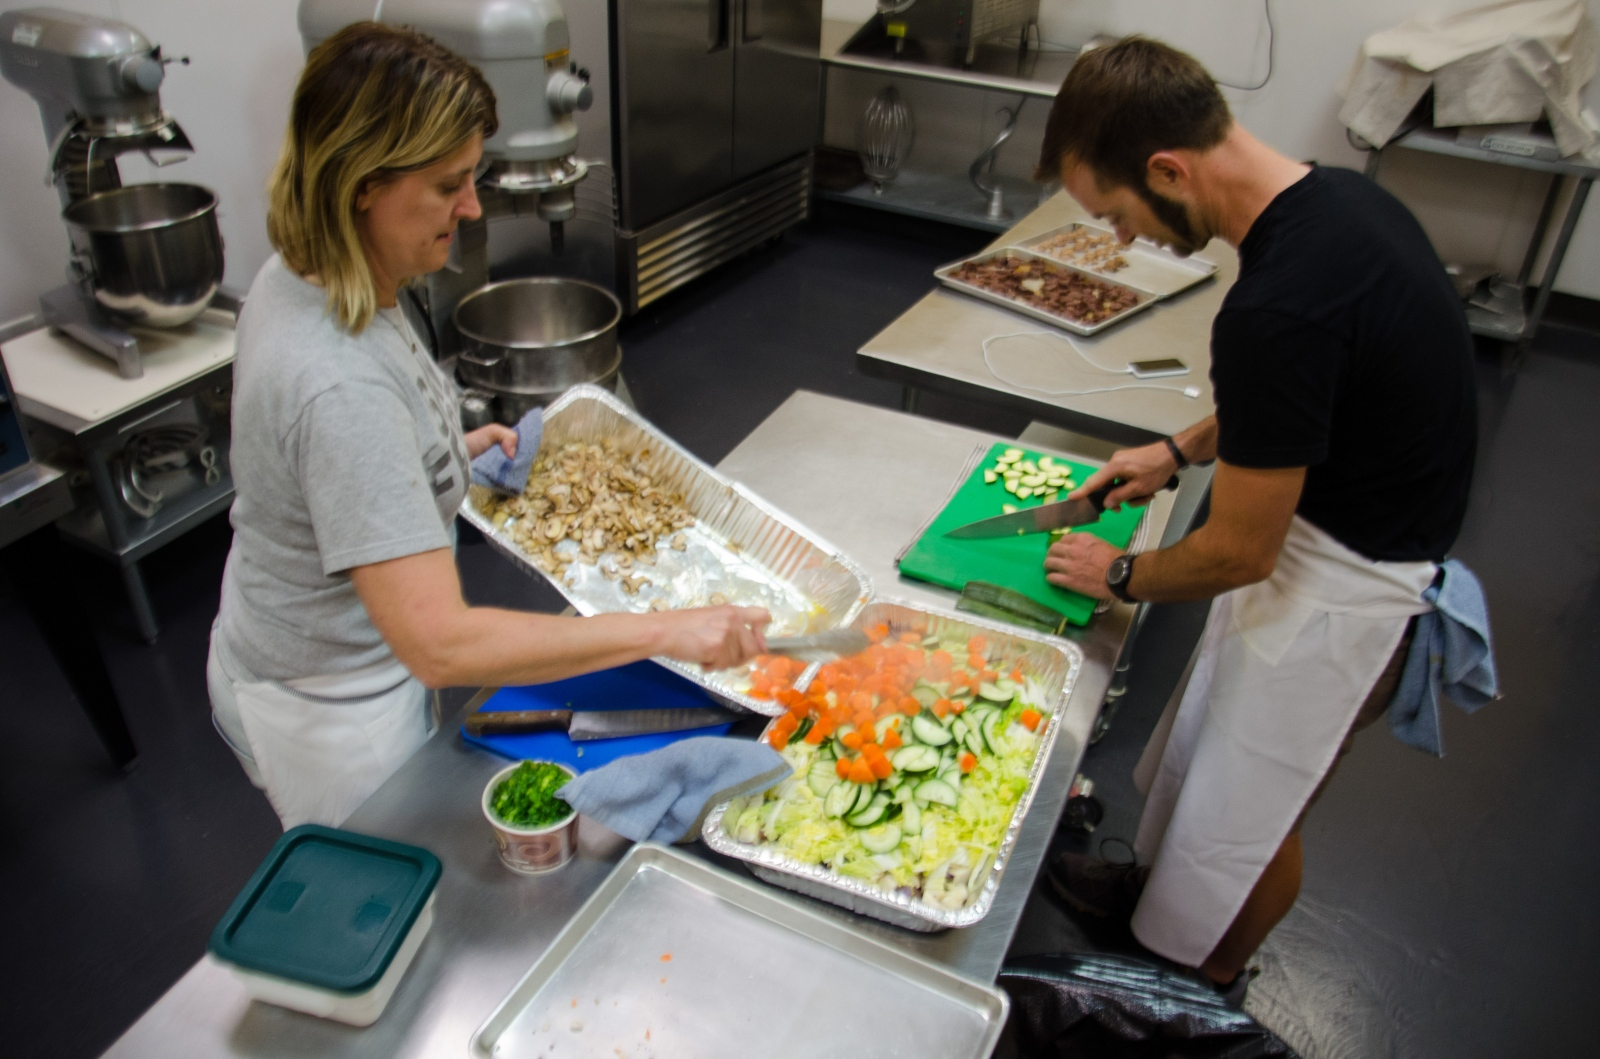 Chef Kelly and Morgan chop, cook and mix a variety of ingredients to create the ordered dishes to deliver.